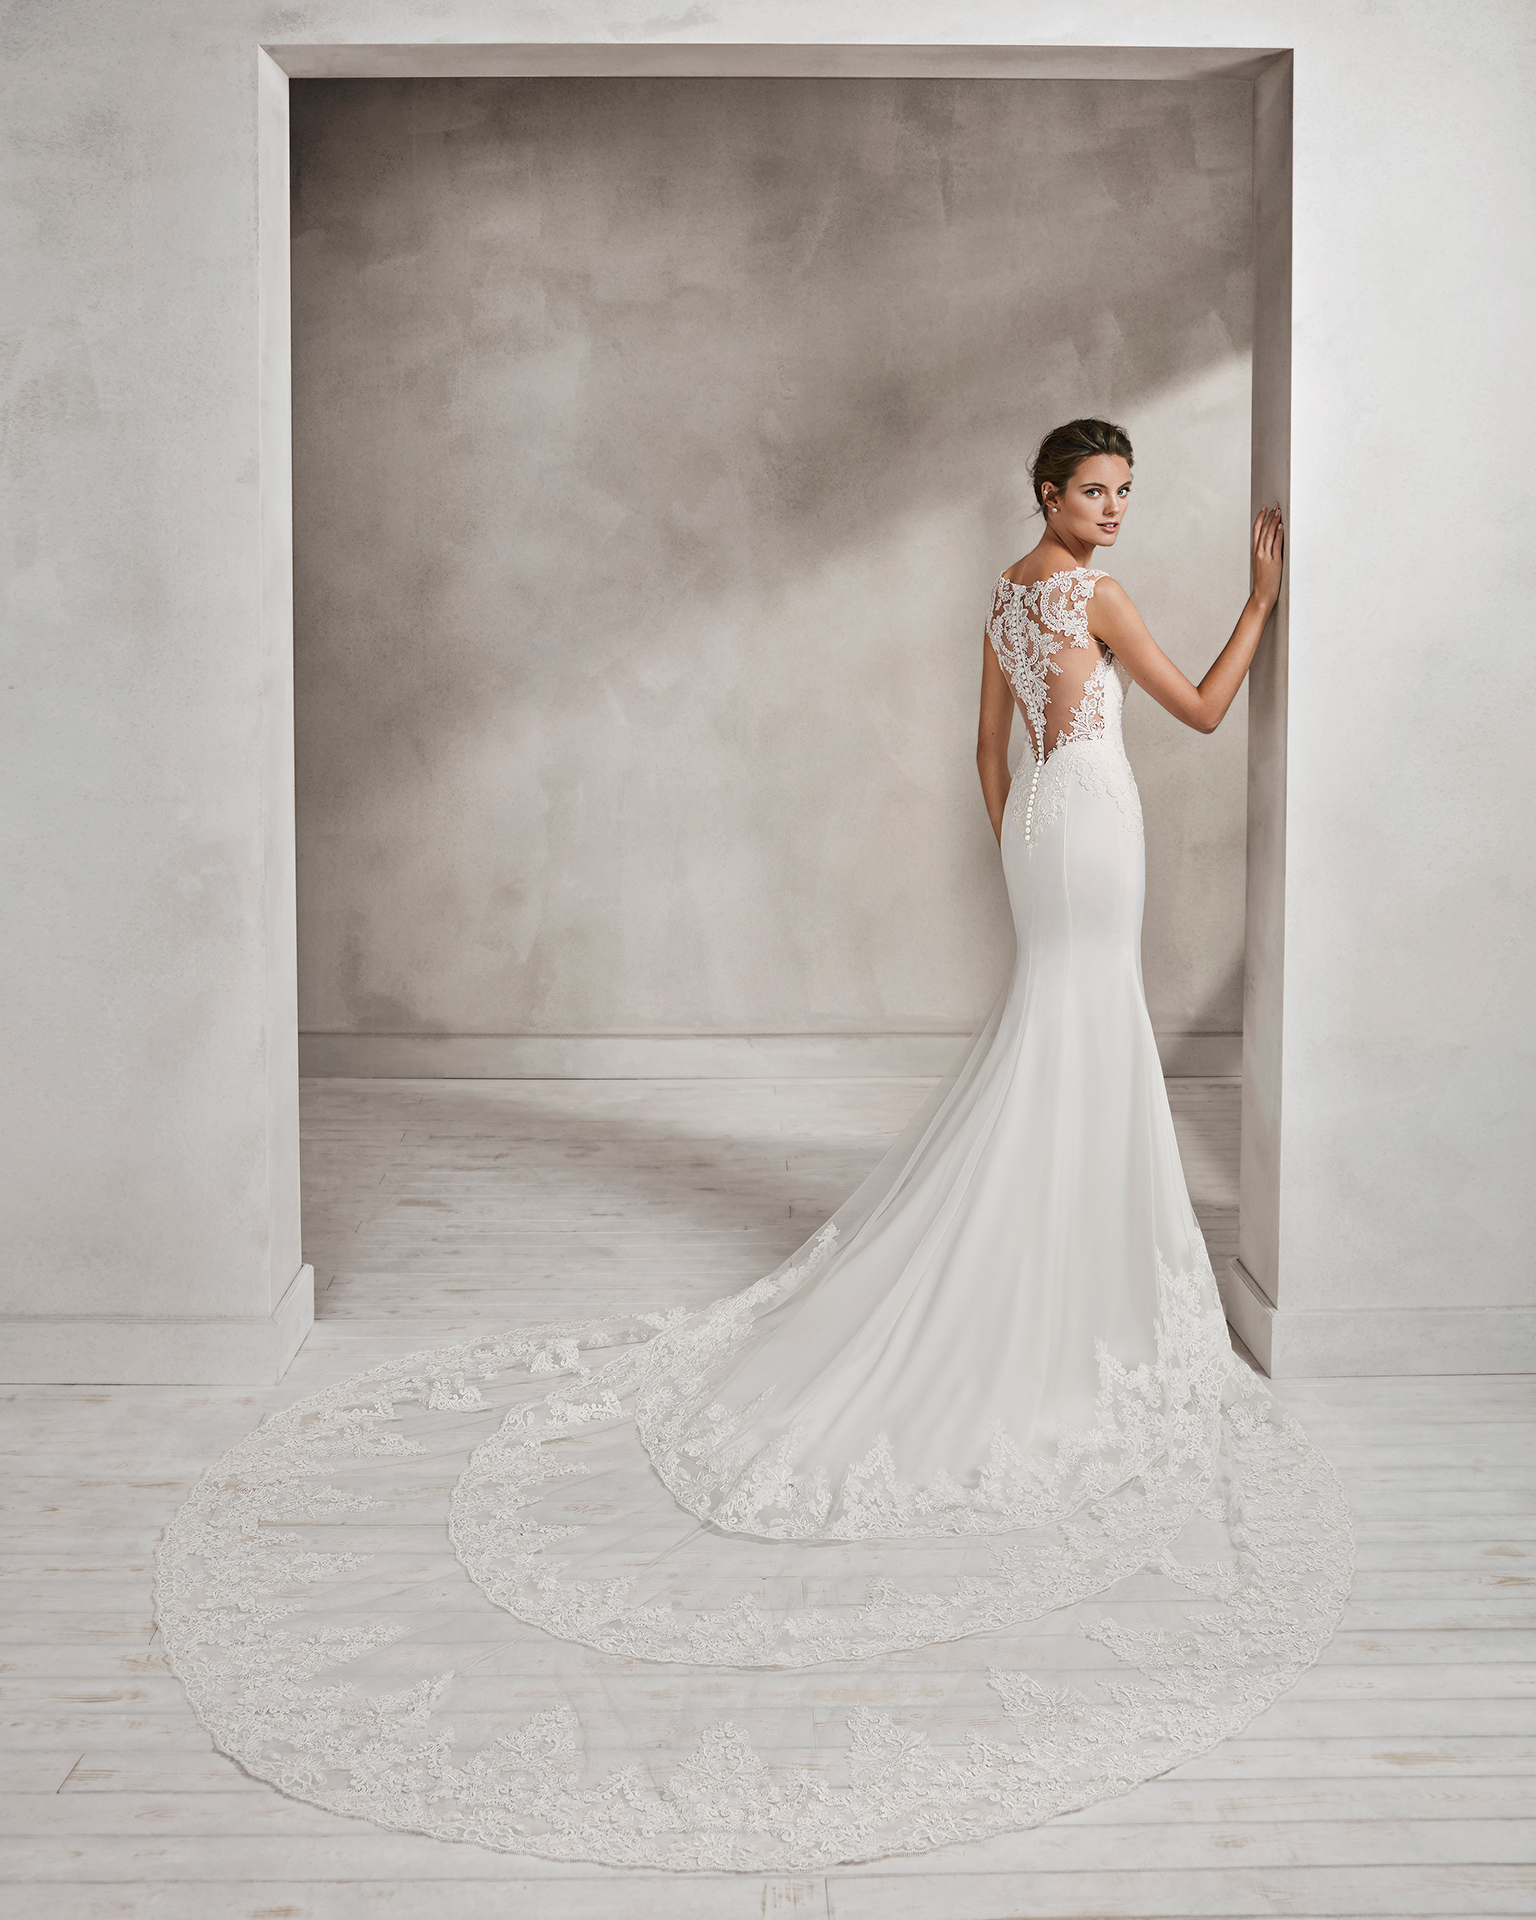 Mermaid-style crepe and lace wedding dress with sweetheart neckline and lace back.